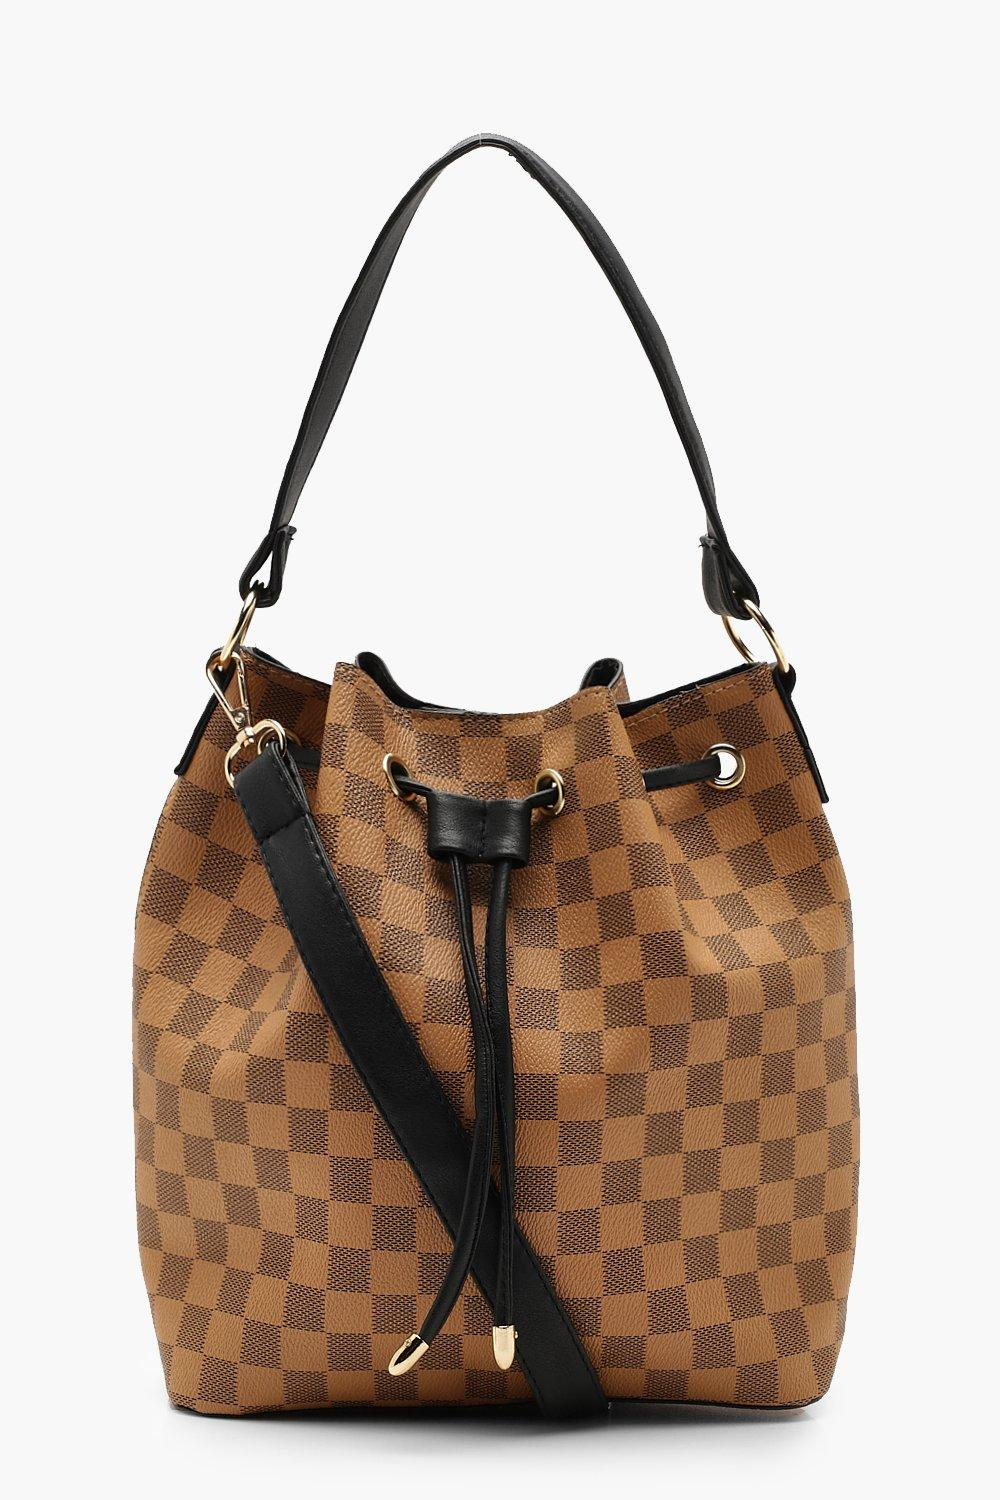 ACCESSORIES Check Duffle Day Bag